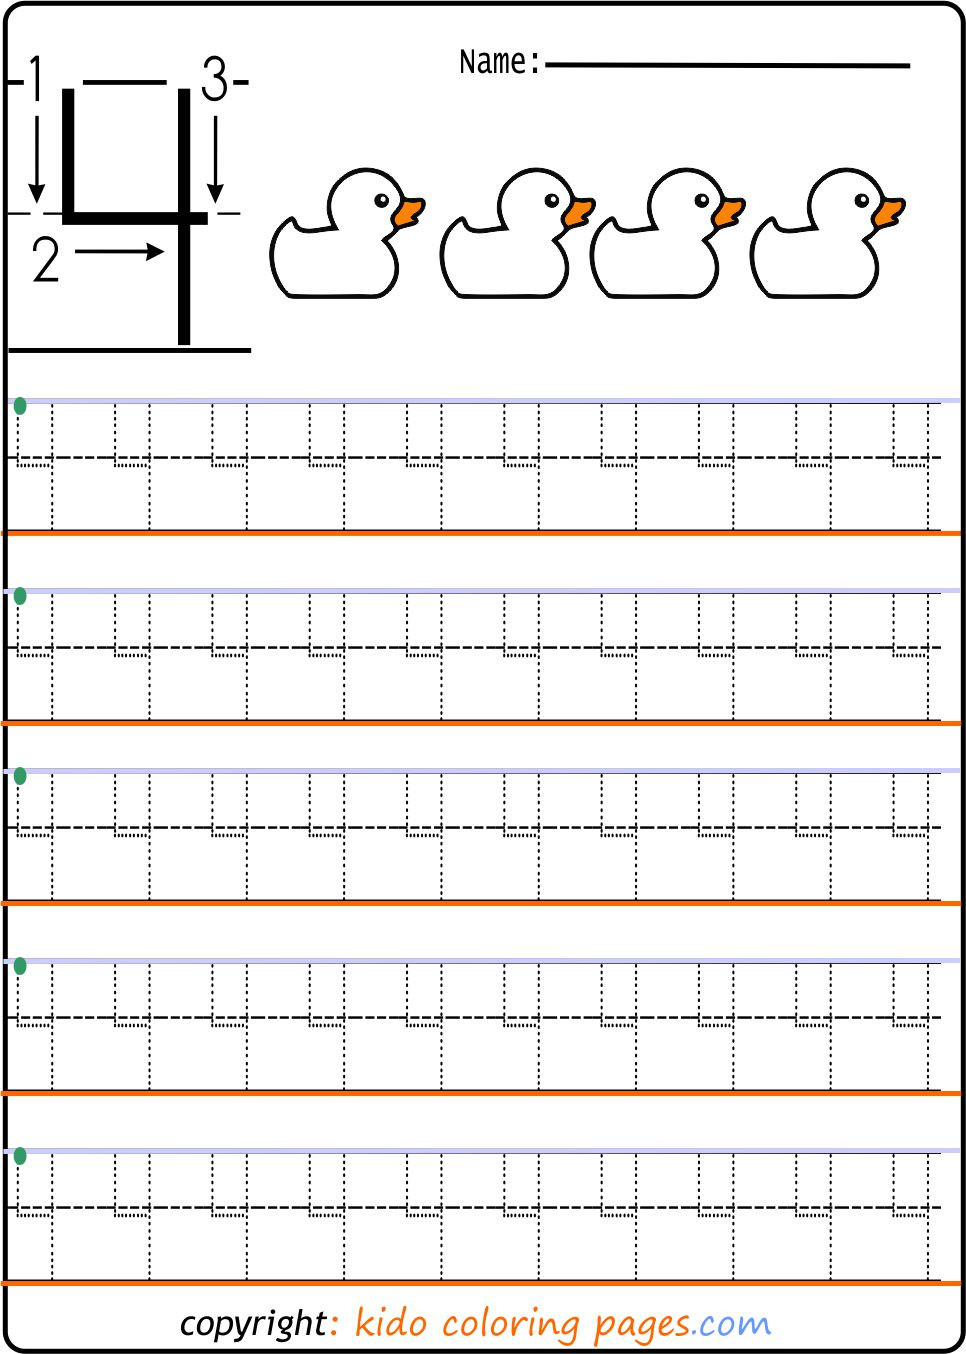 Preschool Number Tracing Number 4 Tracing Worksheets for Preschool Kids Coloring Pages